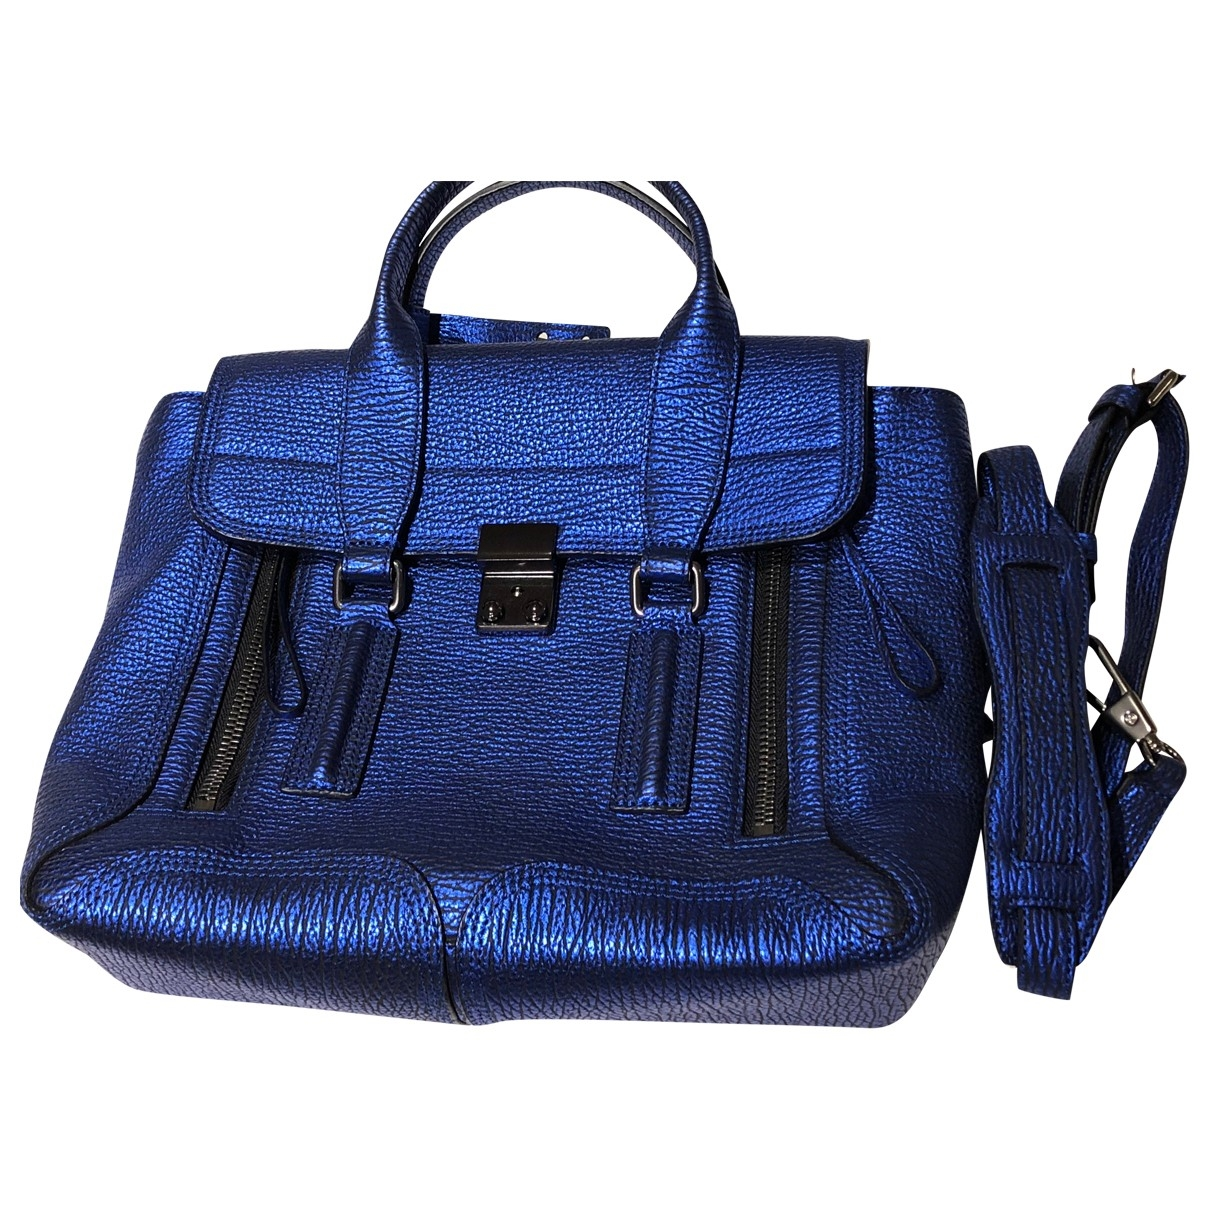 3.1 Phillip Lim Pashli Blue Leather handbag for Women \N